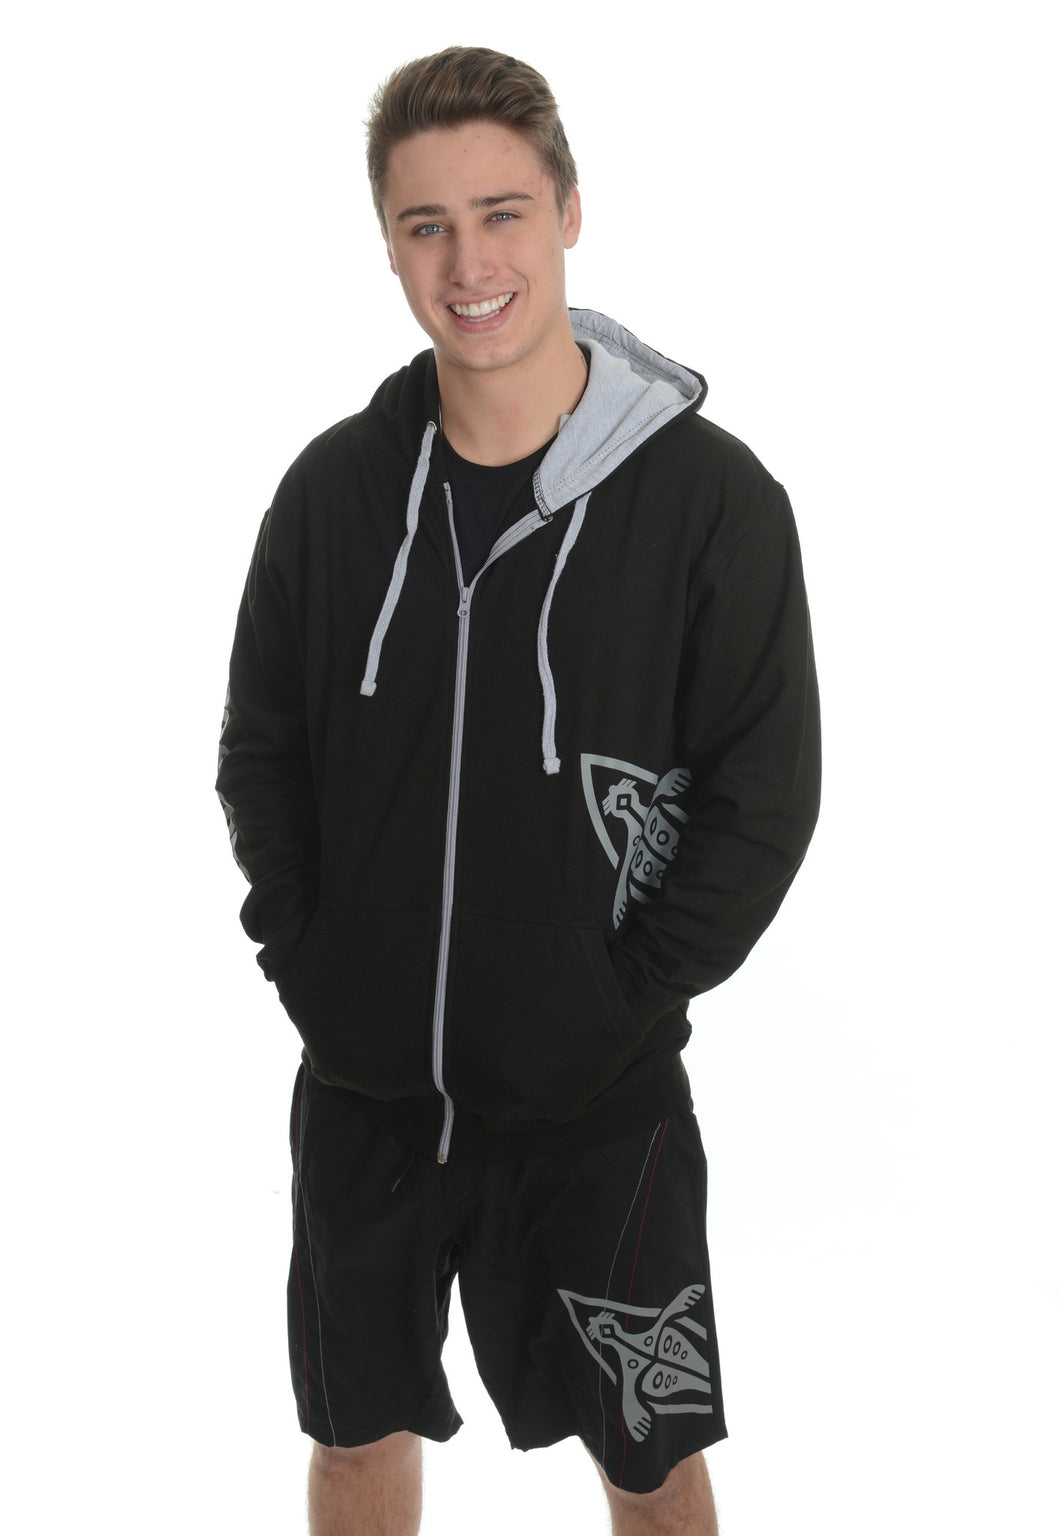 Sealblades zipped hoody